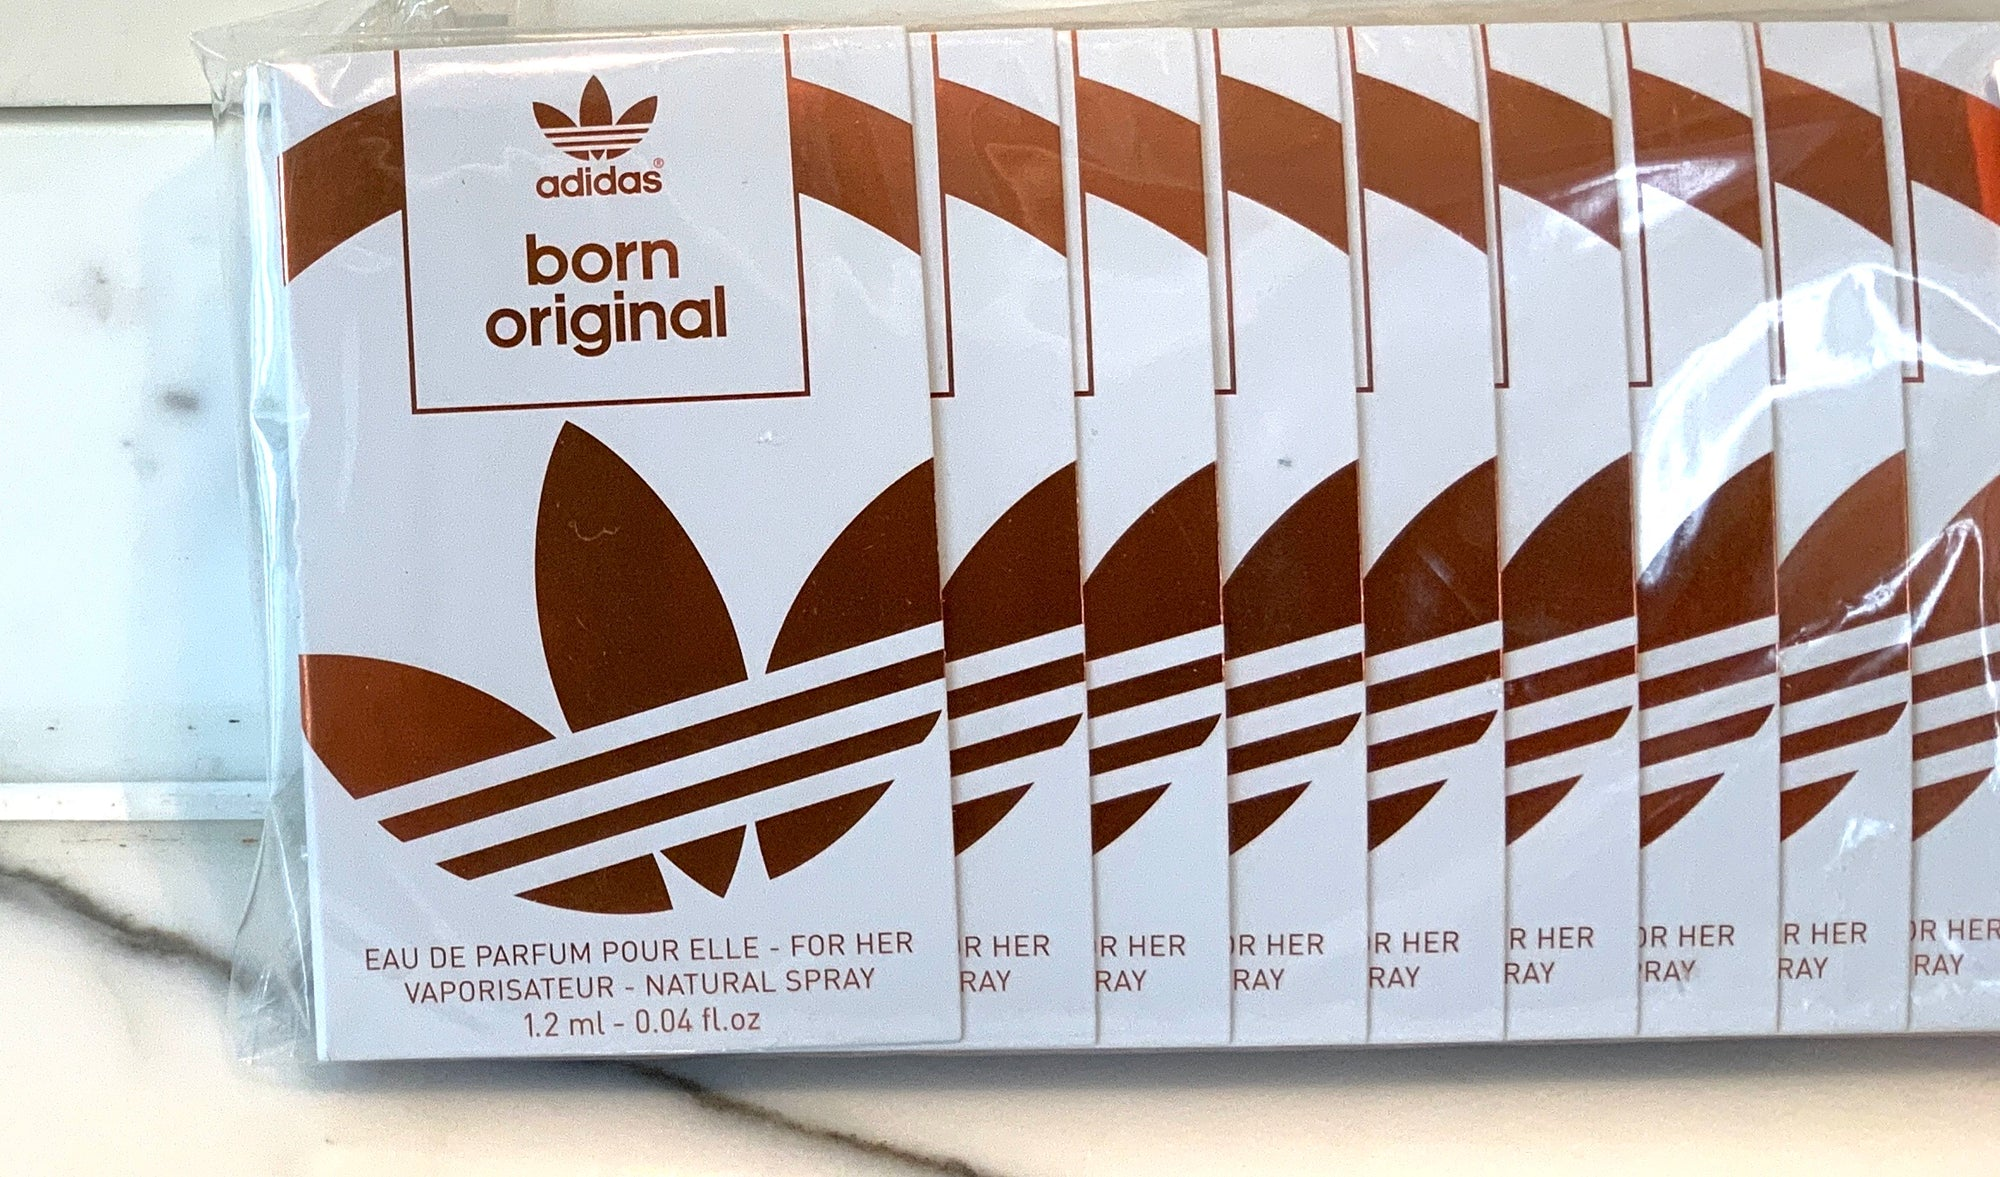 Adidas Born Original EDP 1.2ml for Her 12 PACK Vials